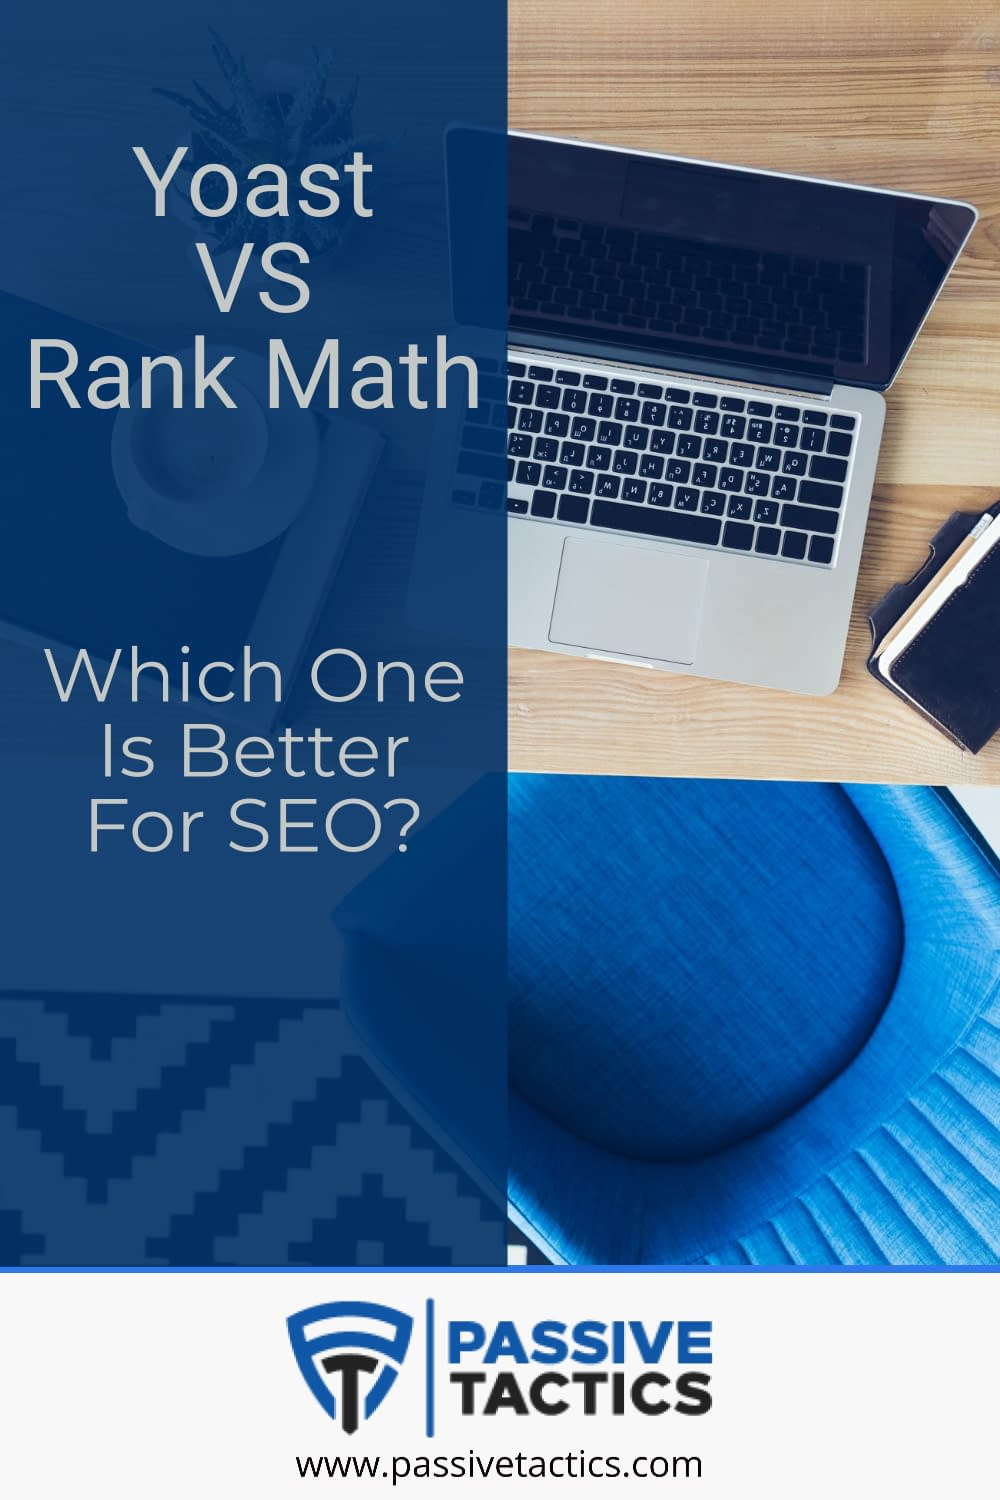 Rank Math VS Yoast: Which One Is Better For SEO?